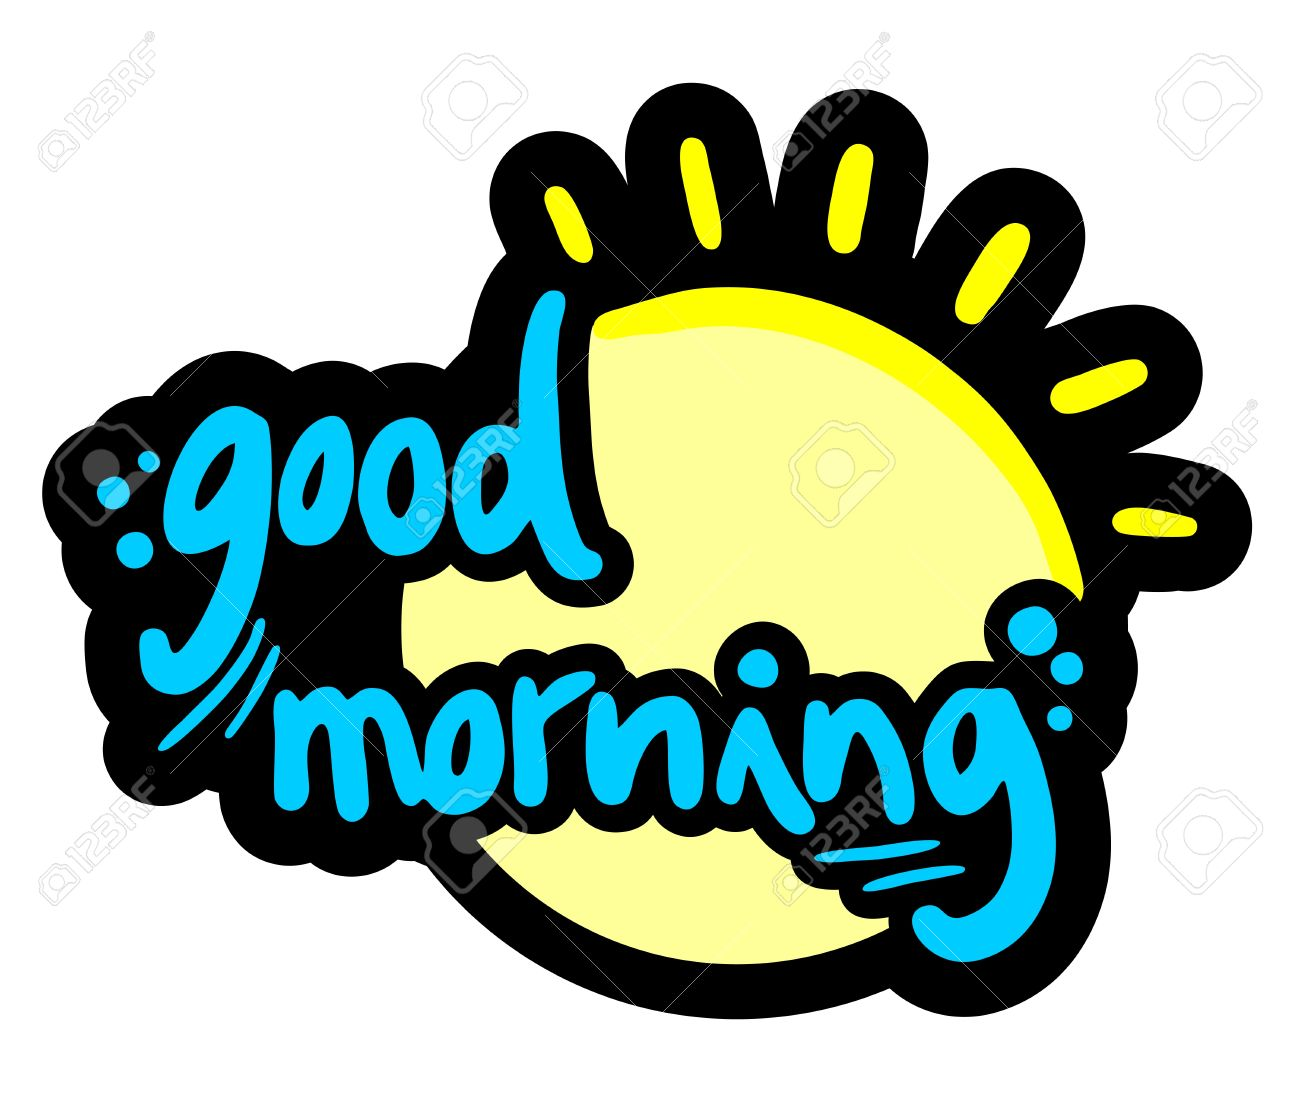 good morning sun design royalty free cliparts vectors and stock rh 123rf com good morning colorado good morning logo images